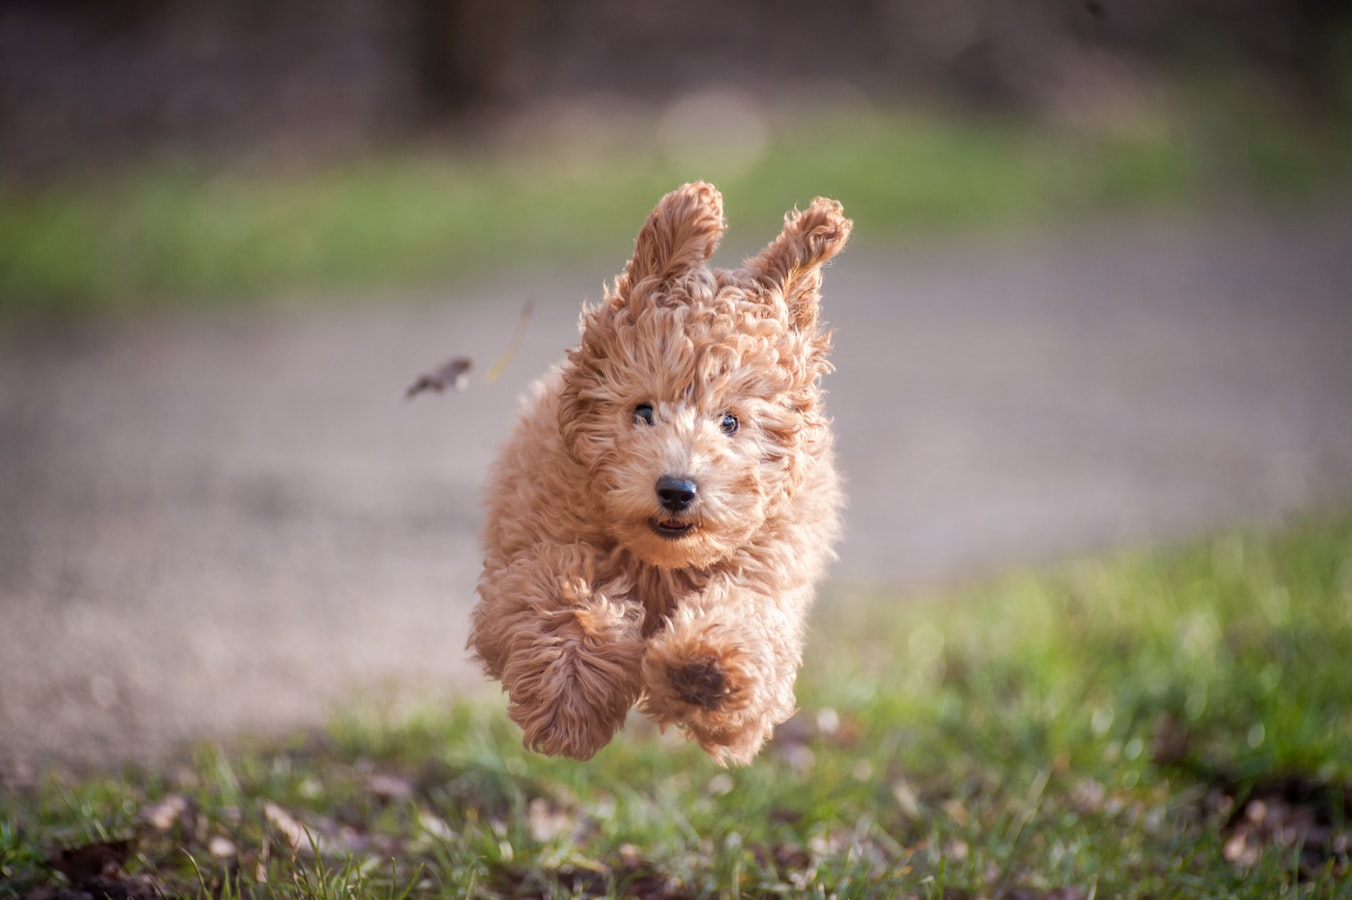 Daily Exercise for Toy Poodles